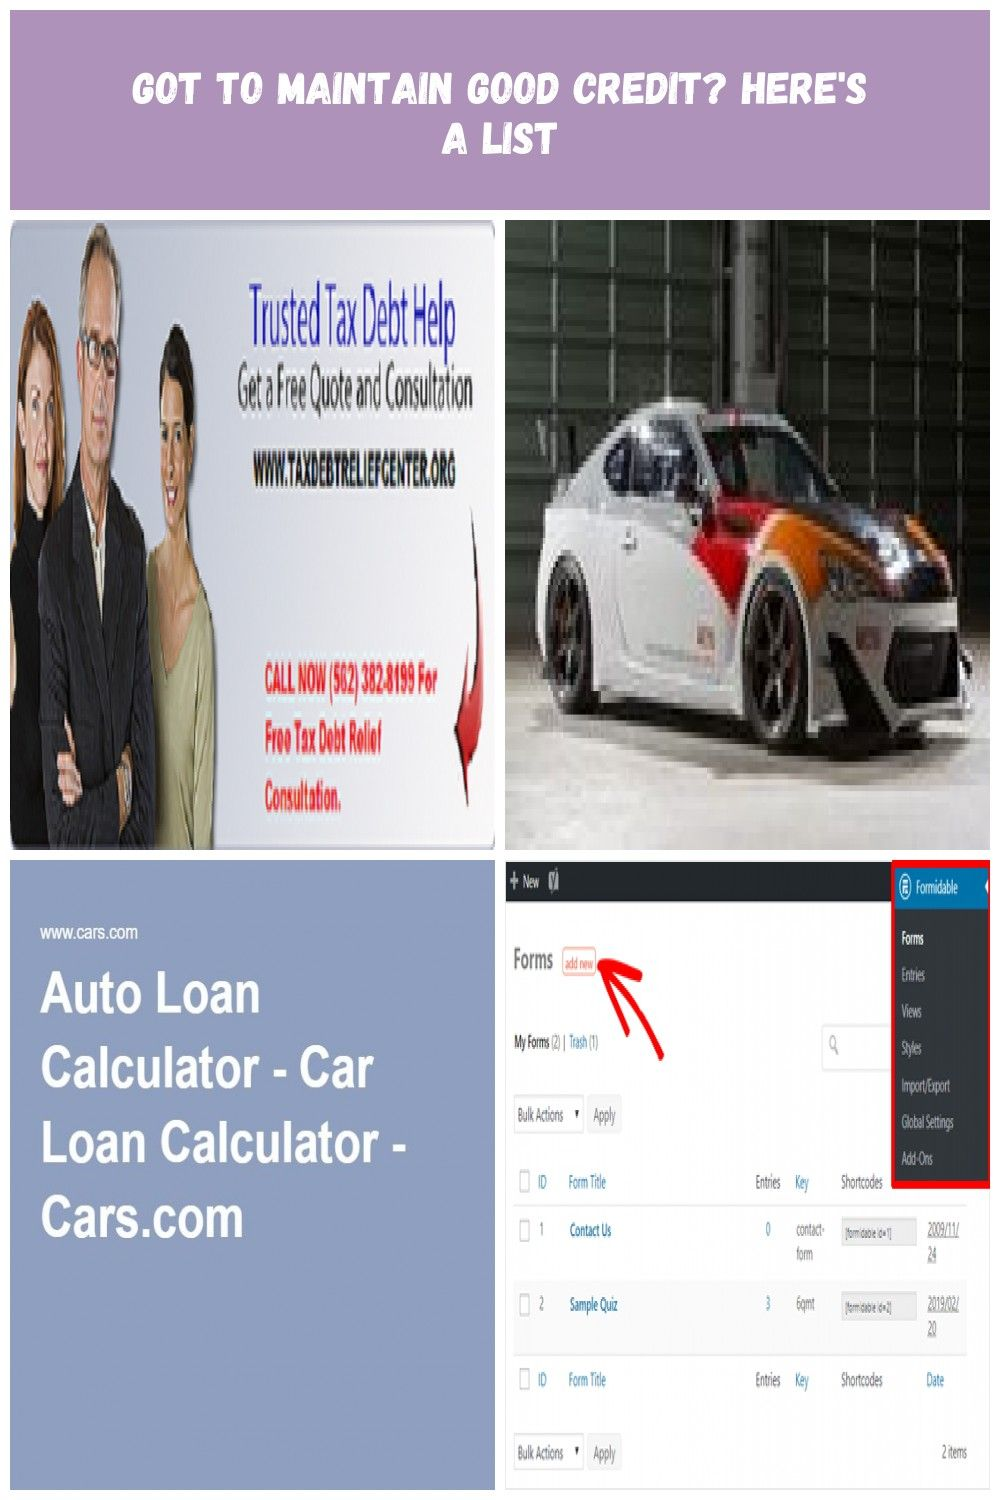 We Can Help You Get A Bad Credit Auto Loan Below Or Good Credit Loans With Zero Down And Low Low Interest Rates 100 Ap Good Credit No Credit Loans Car Loans